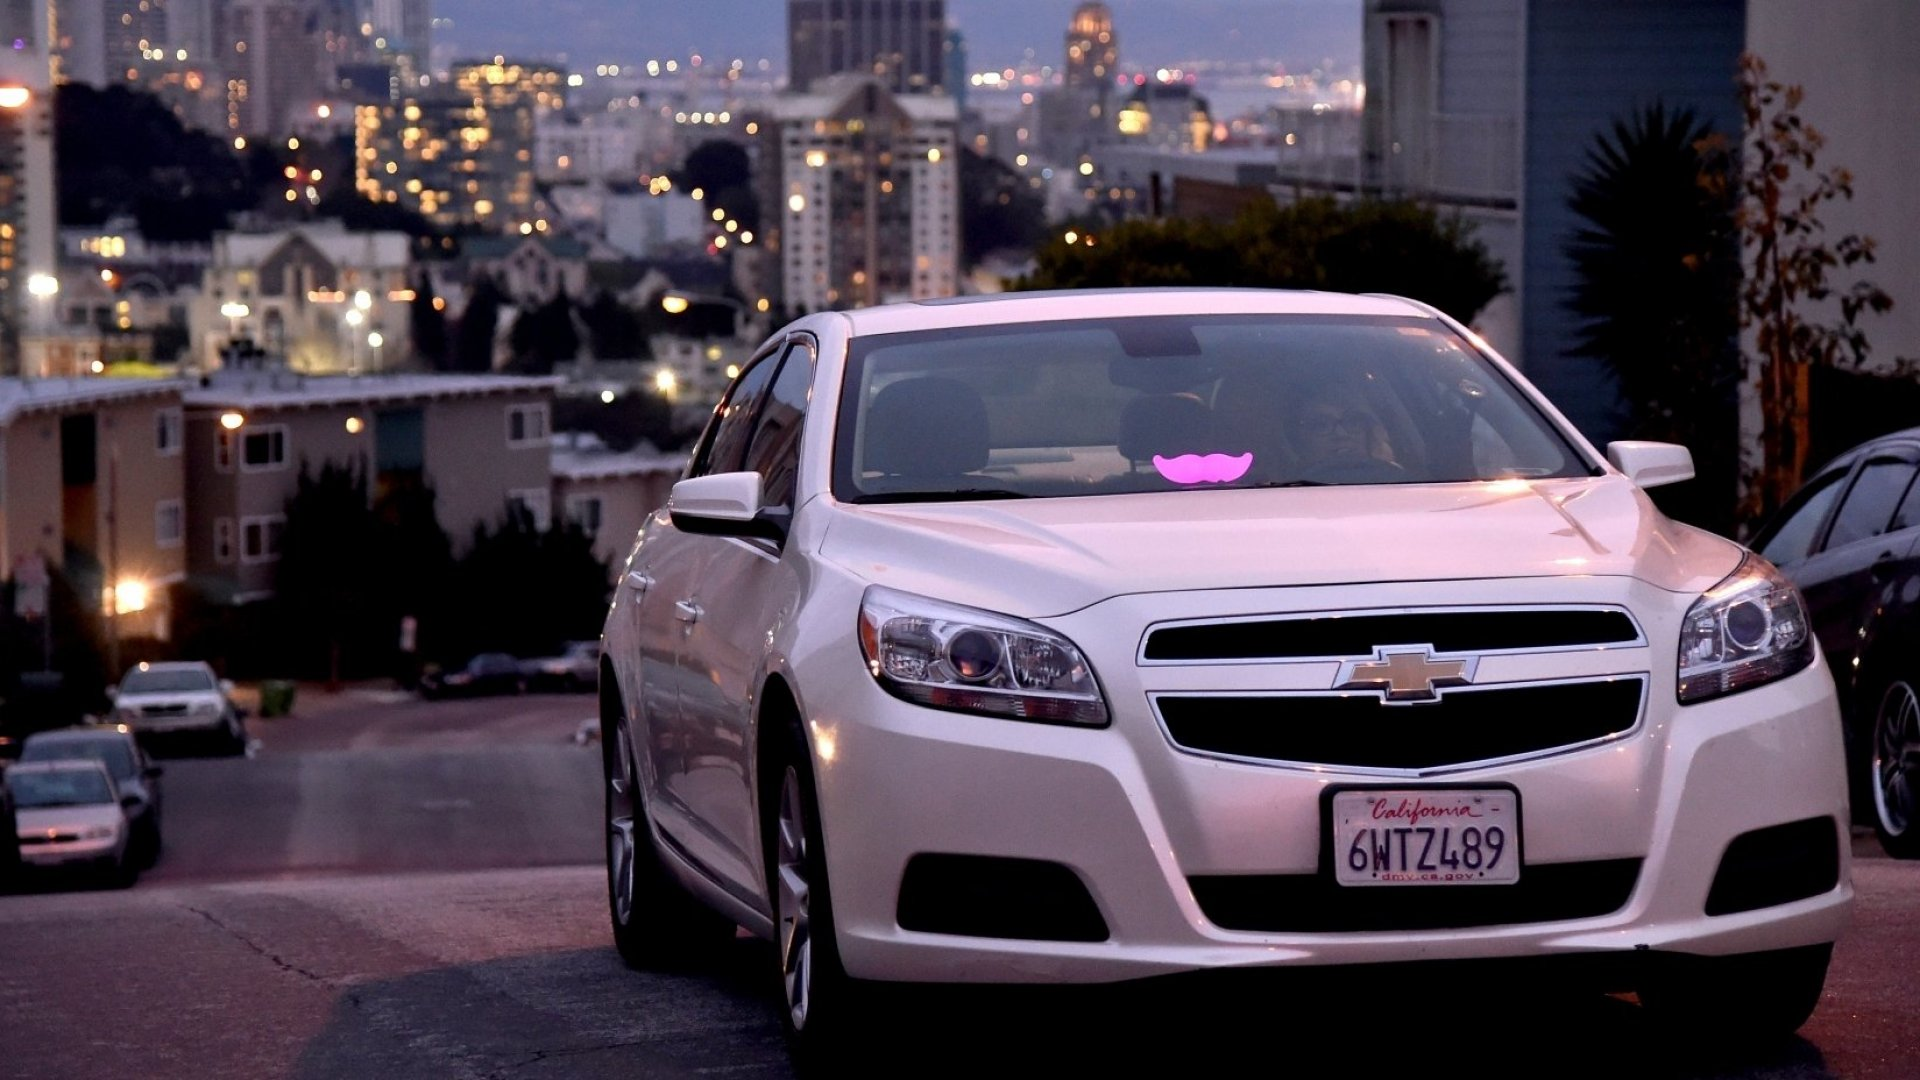 6 Genius Things Lyft Is Doing While Everyone's Hating on Uber